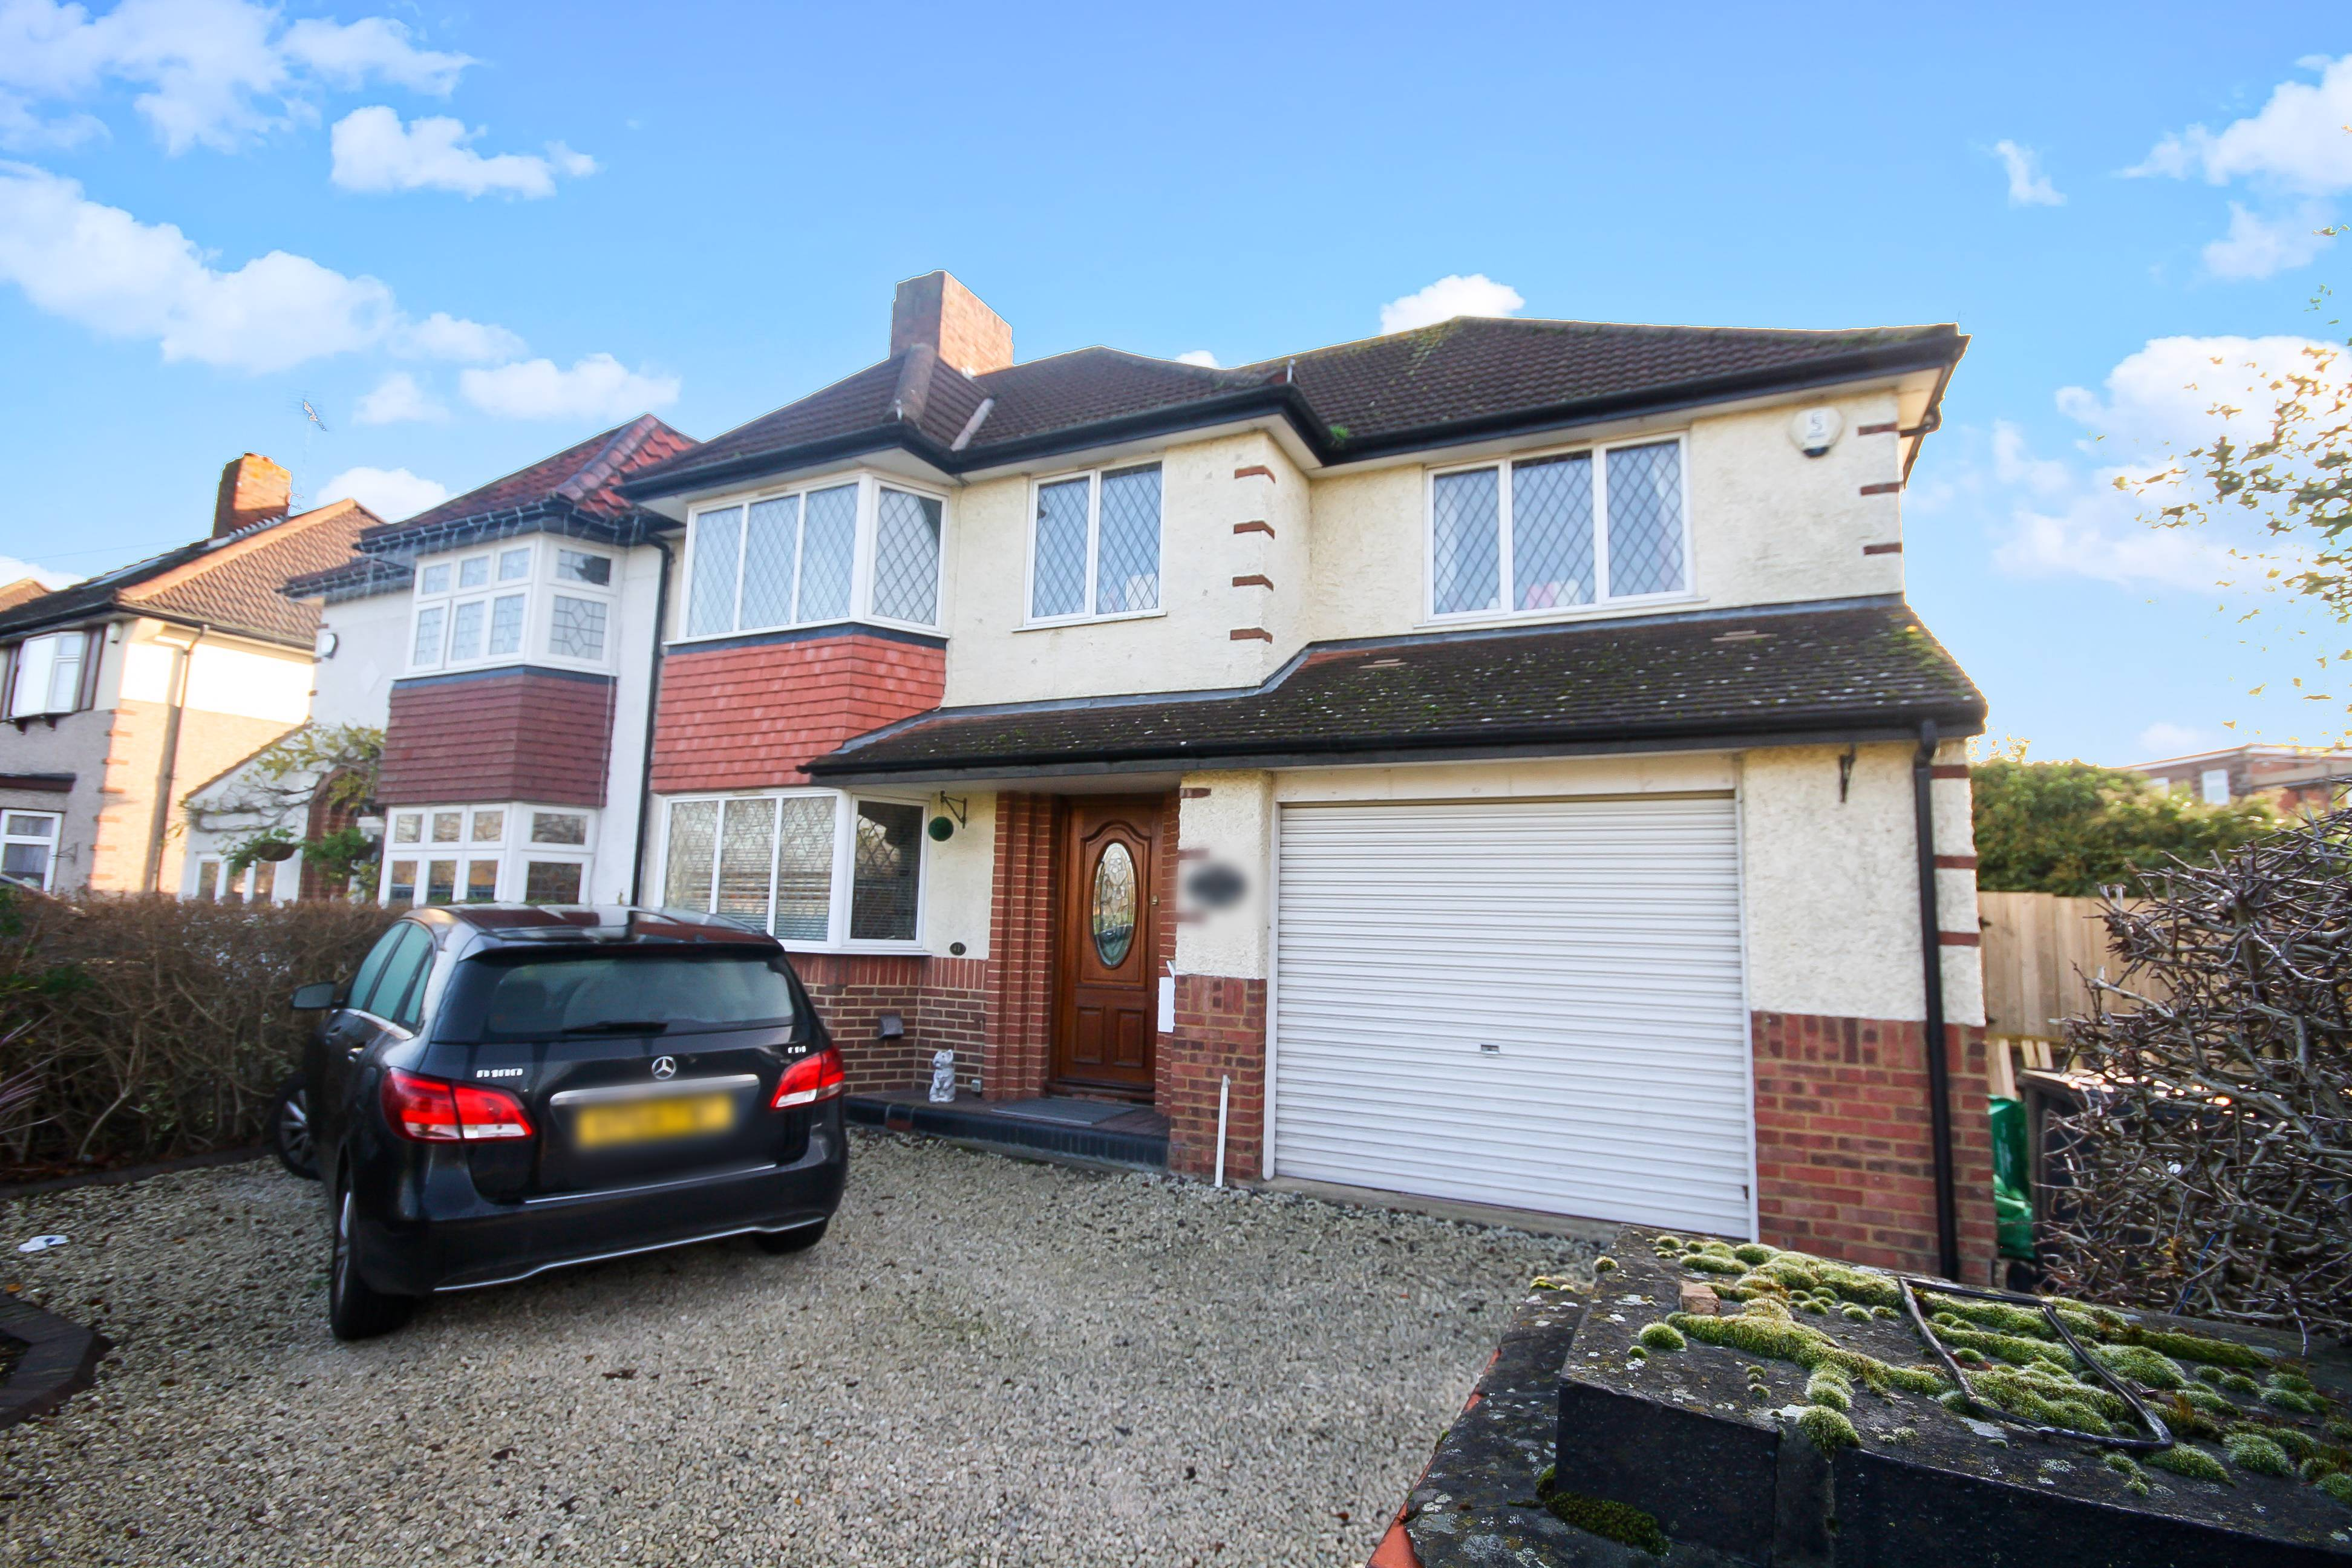 4 Bedrooms Property for sale in Hawtrey Avenue, Northolt